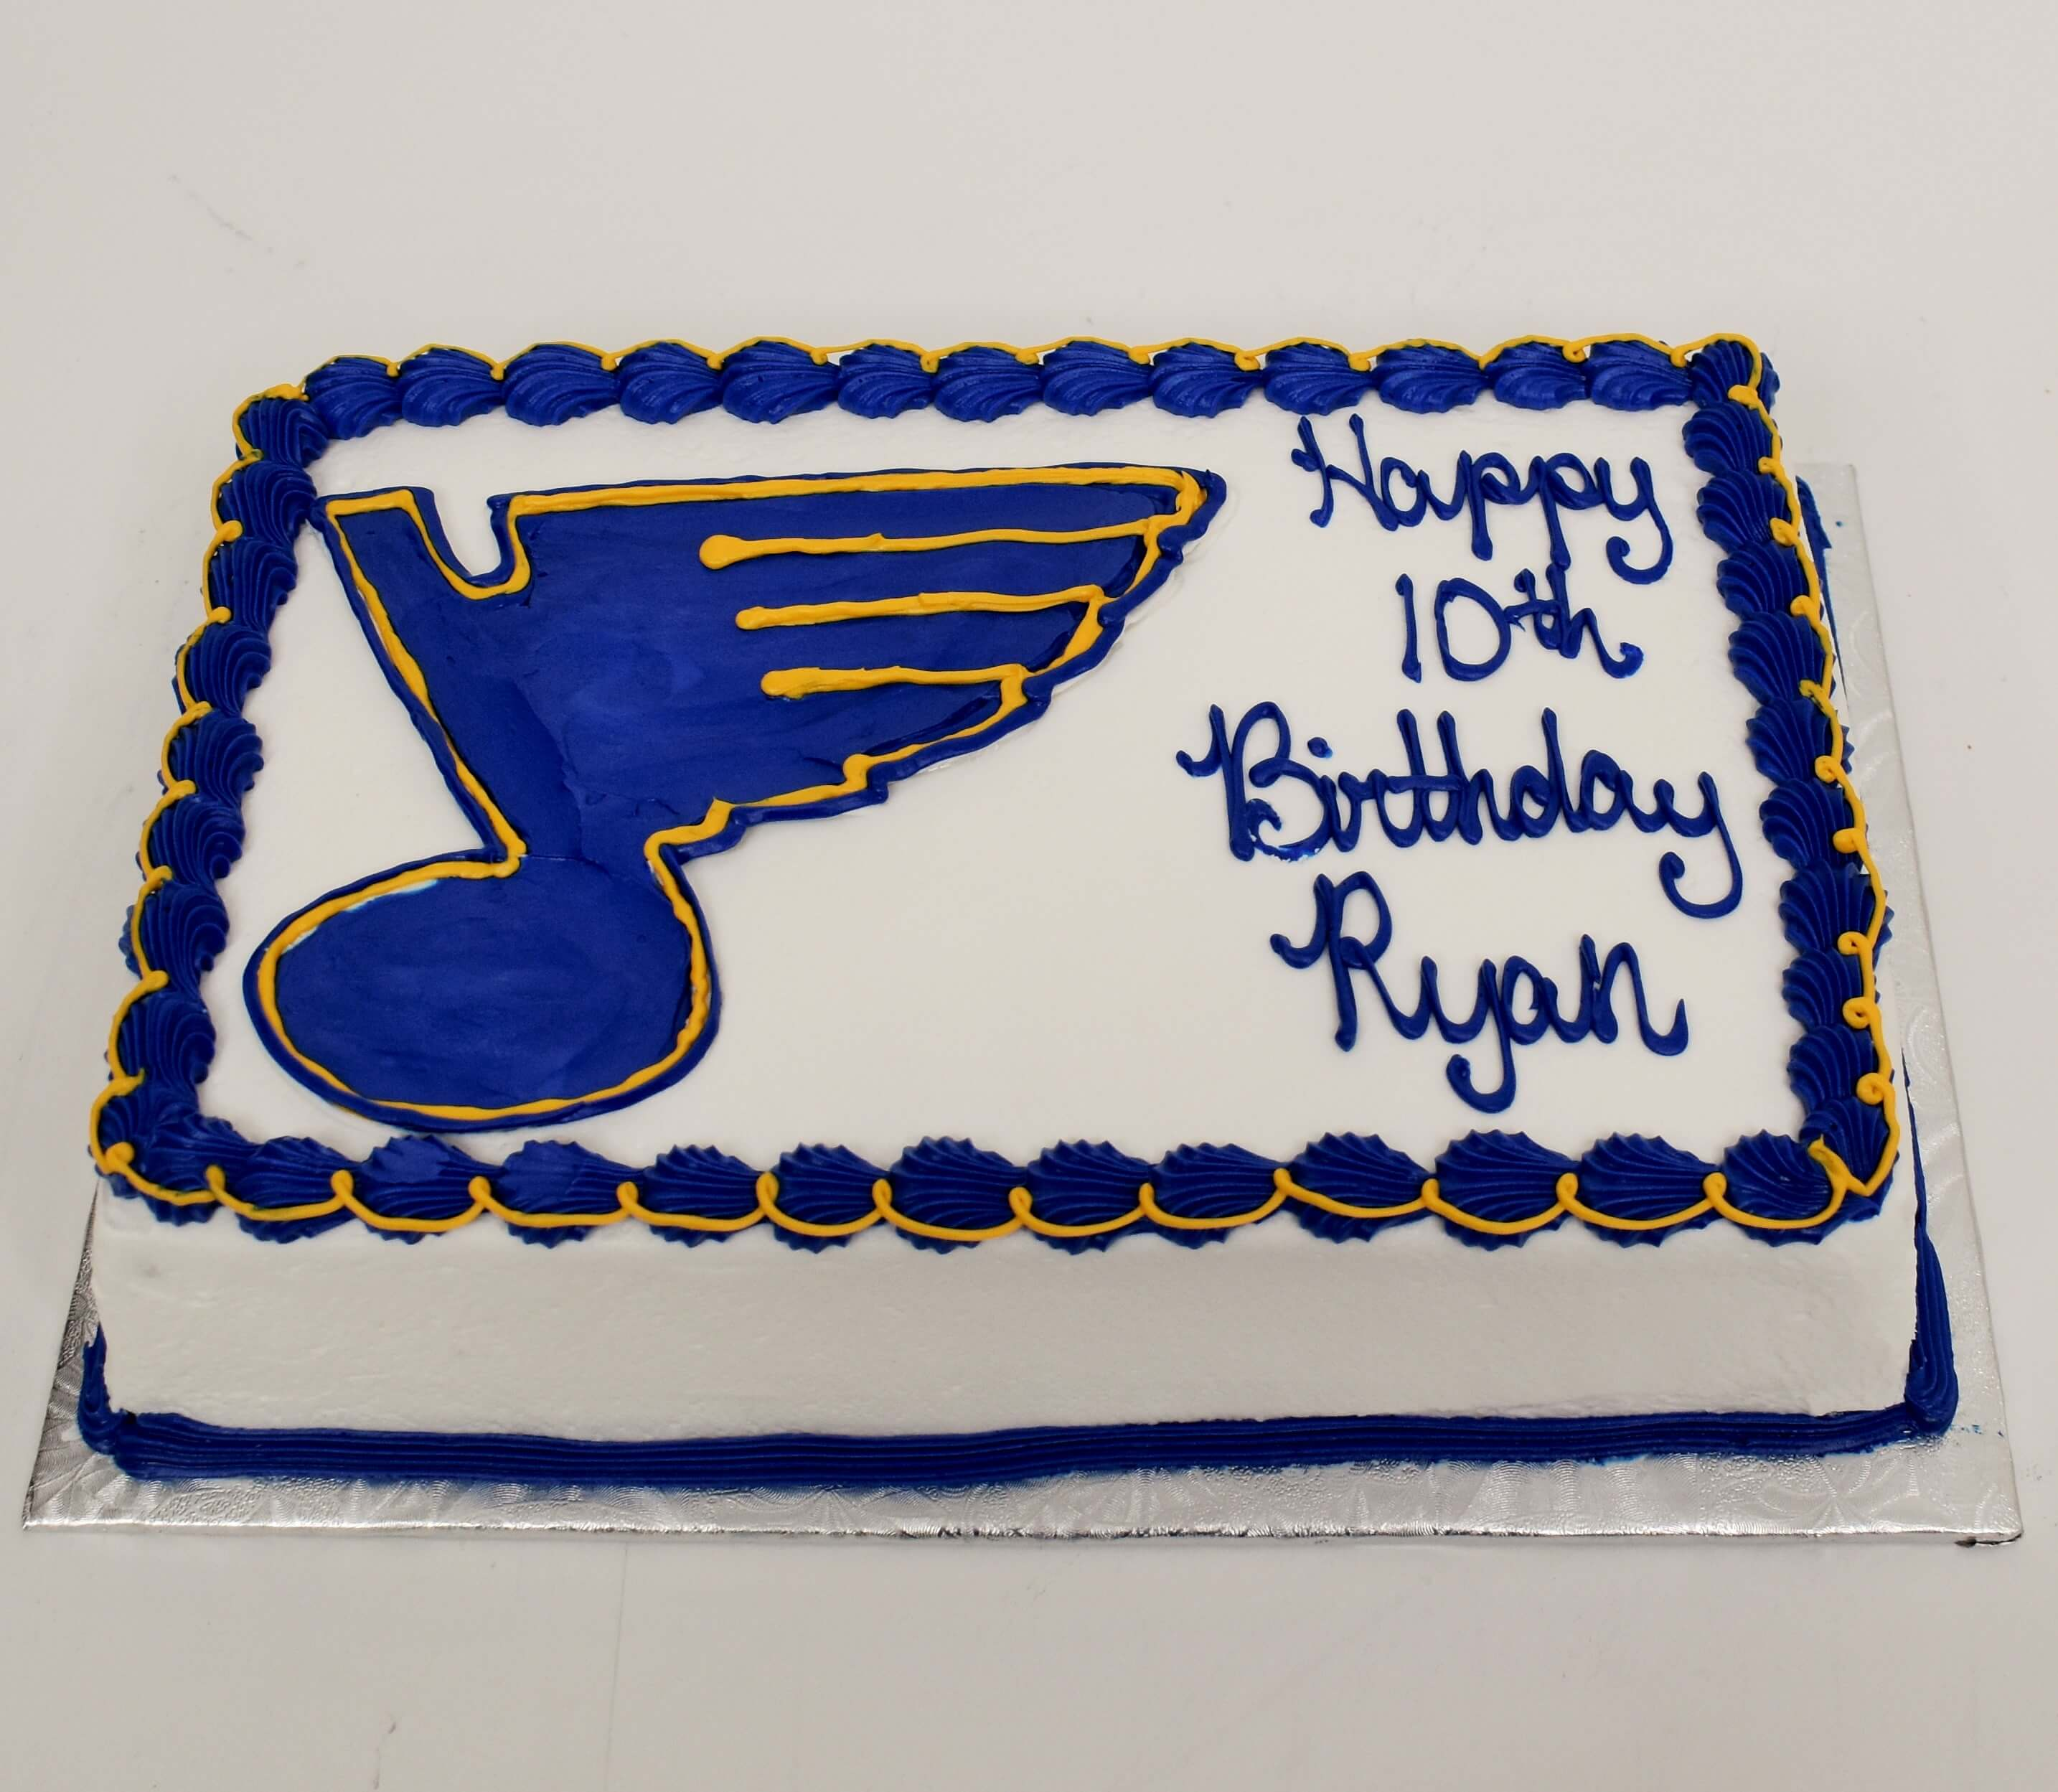 McArthur's Bakery Custom Cake with St Louis Blues Note